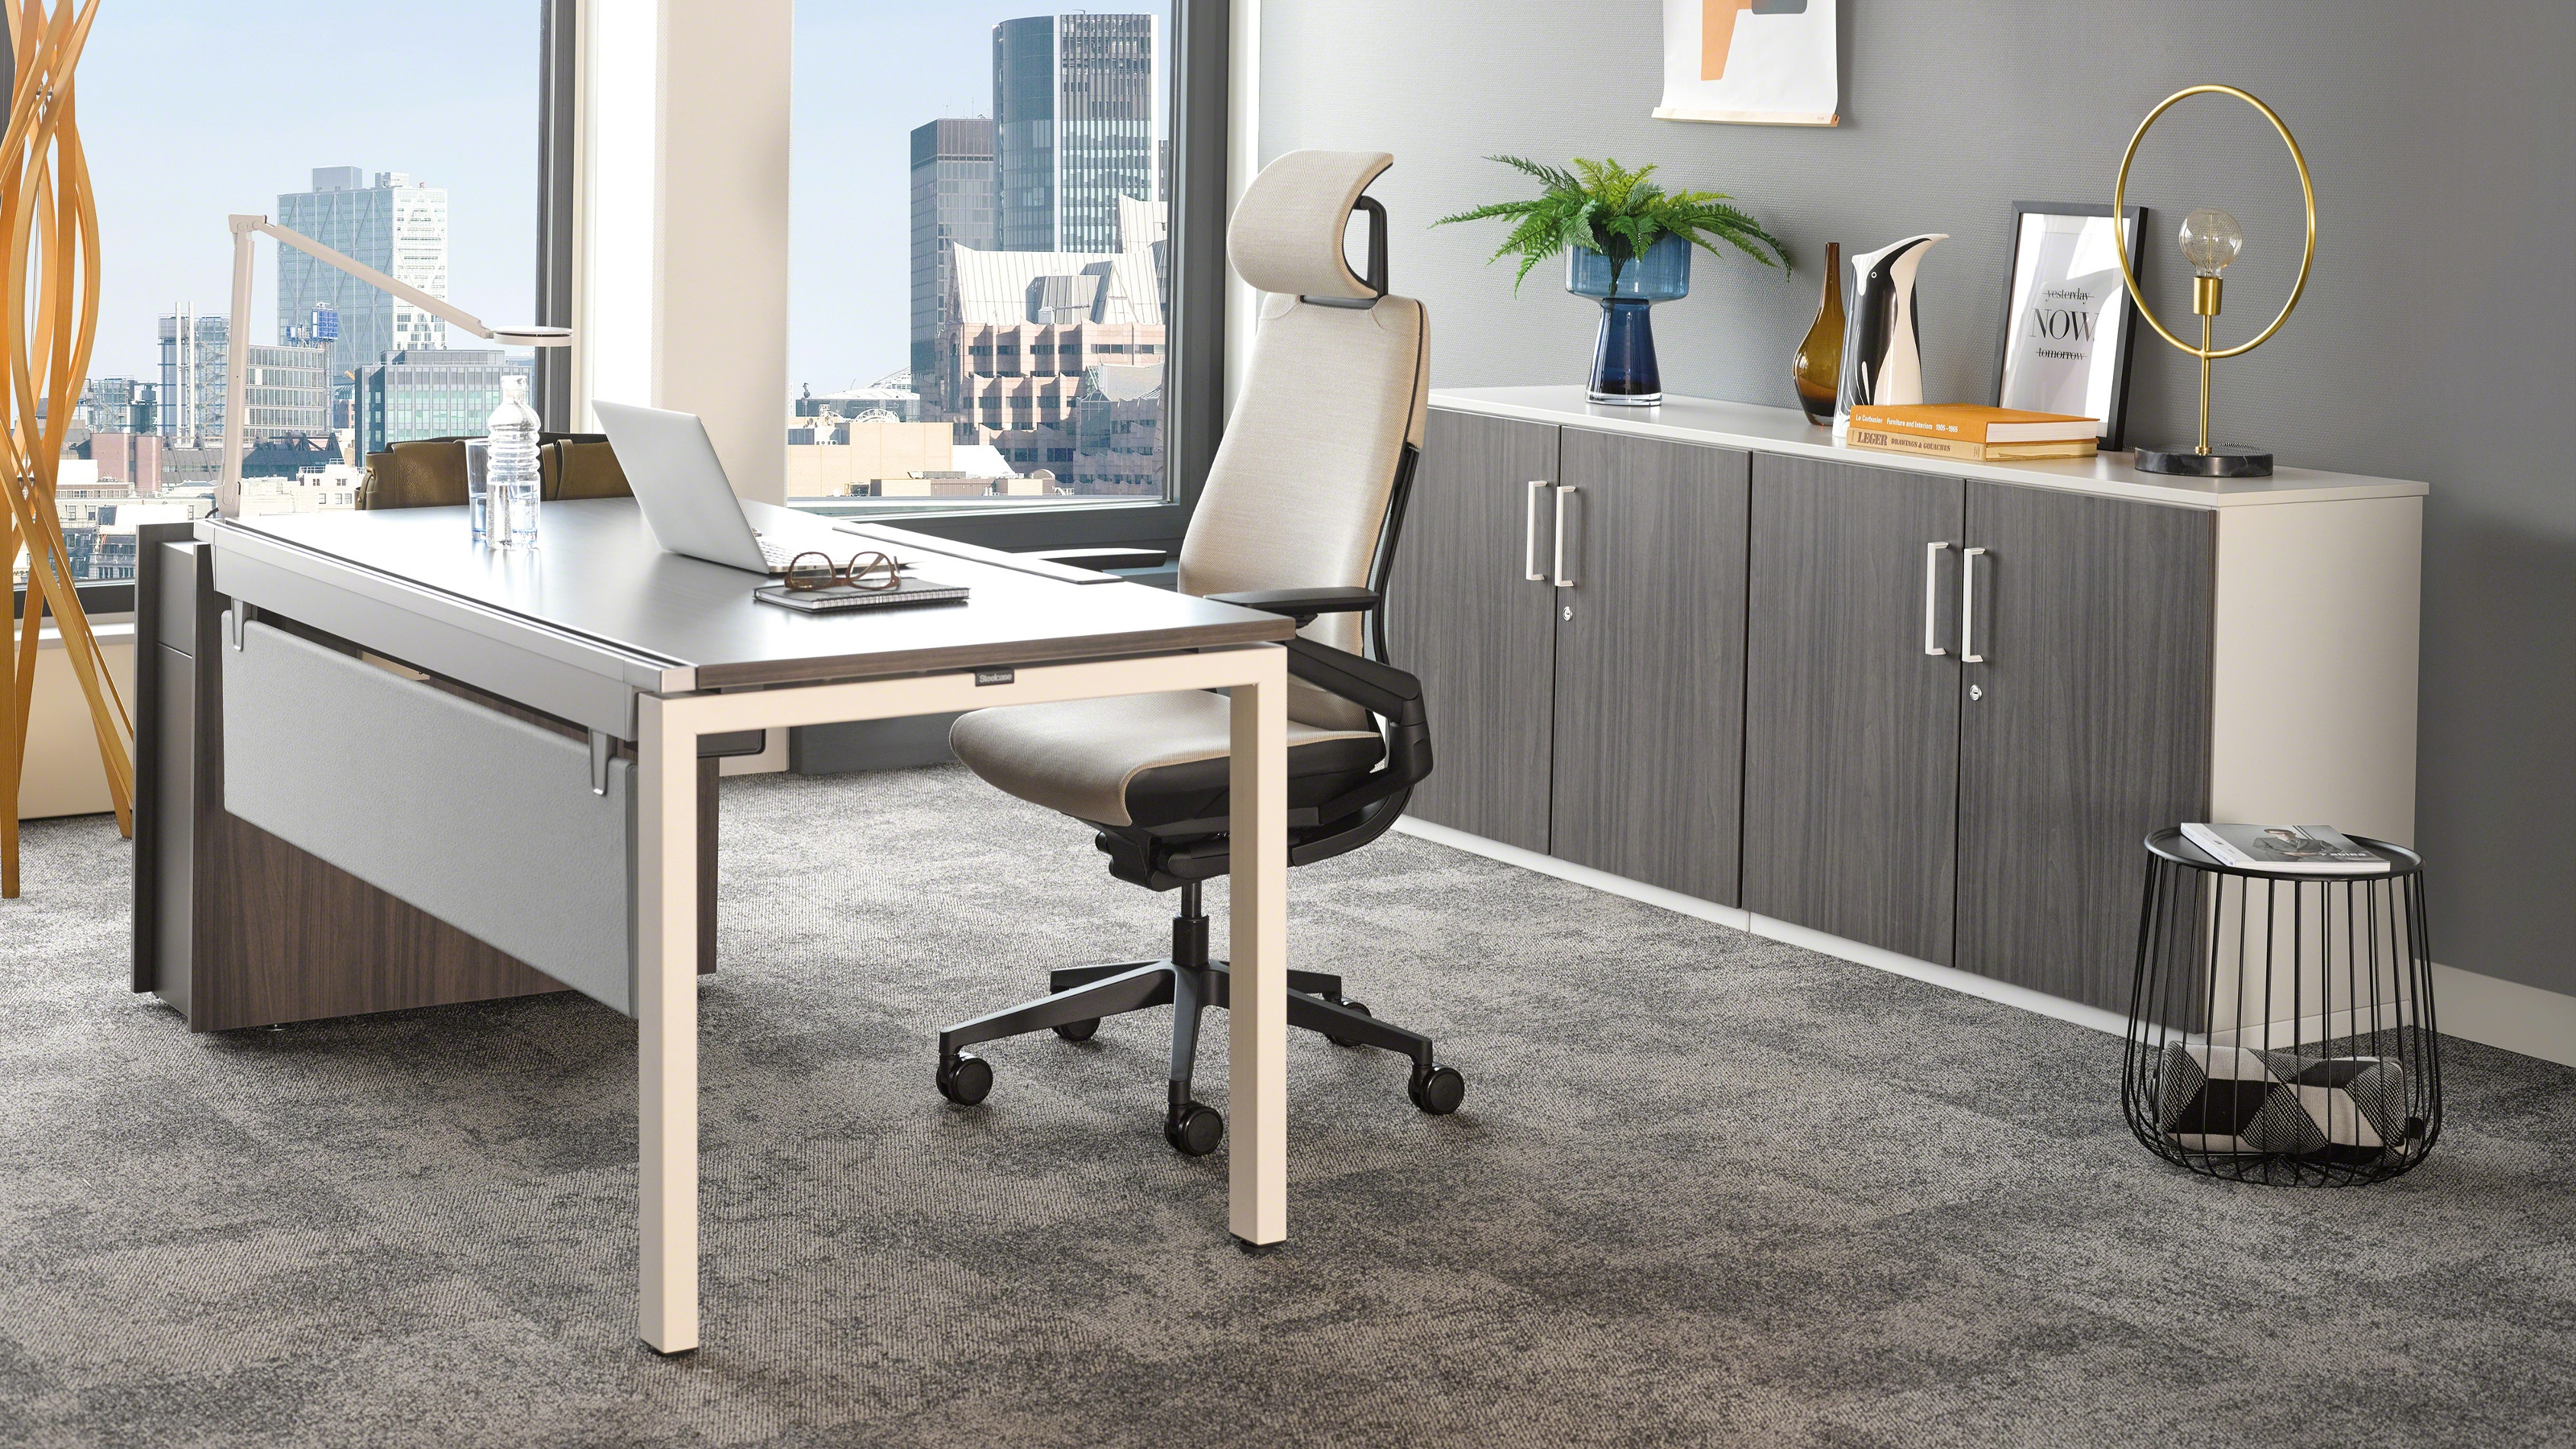 steelcase  office furniture solutions education  healthcare  - framefour